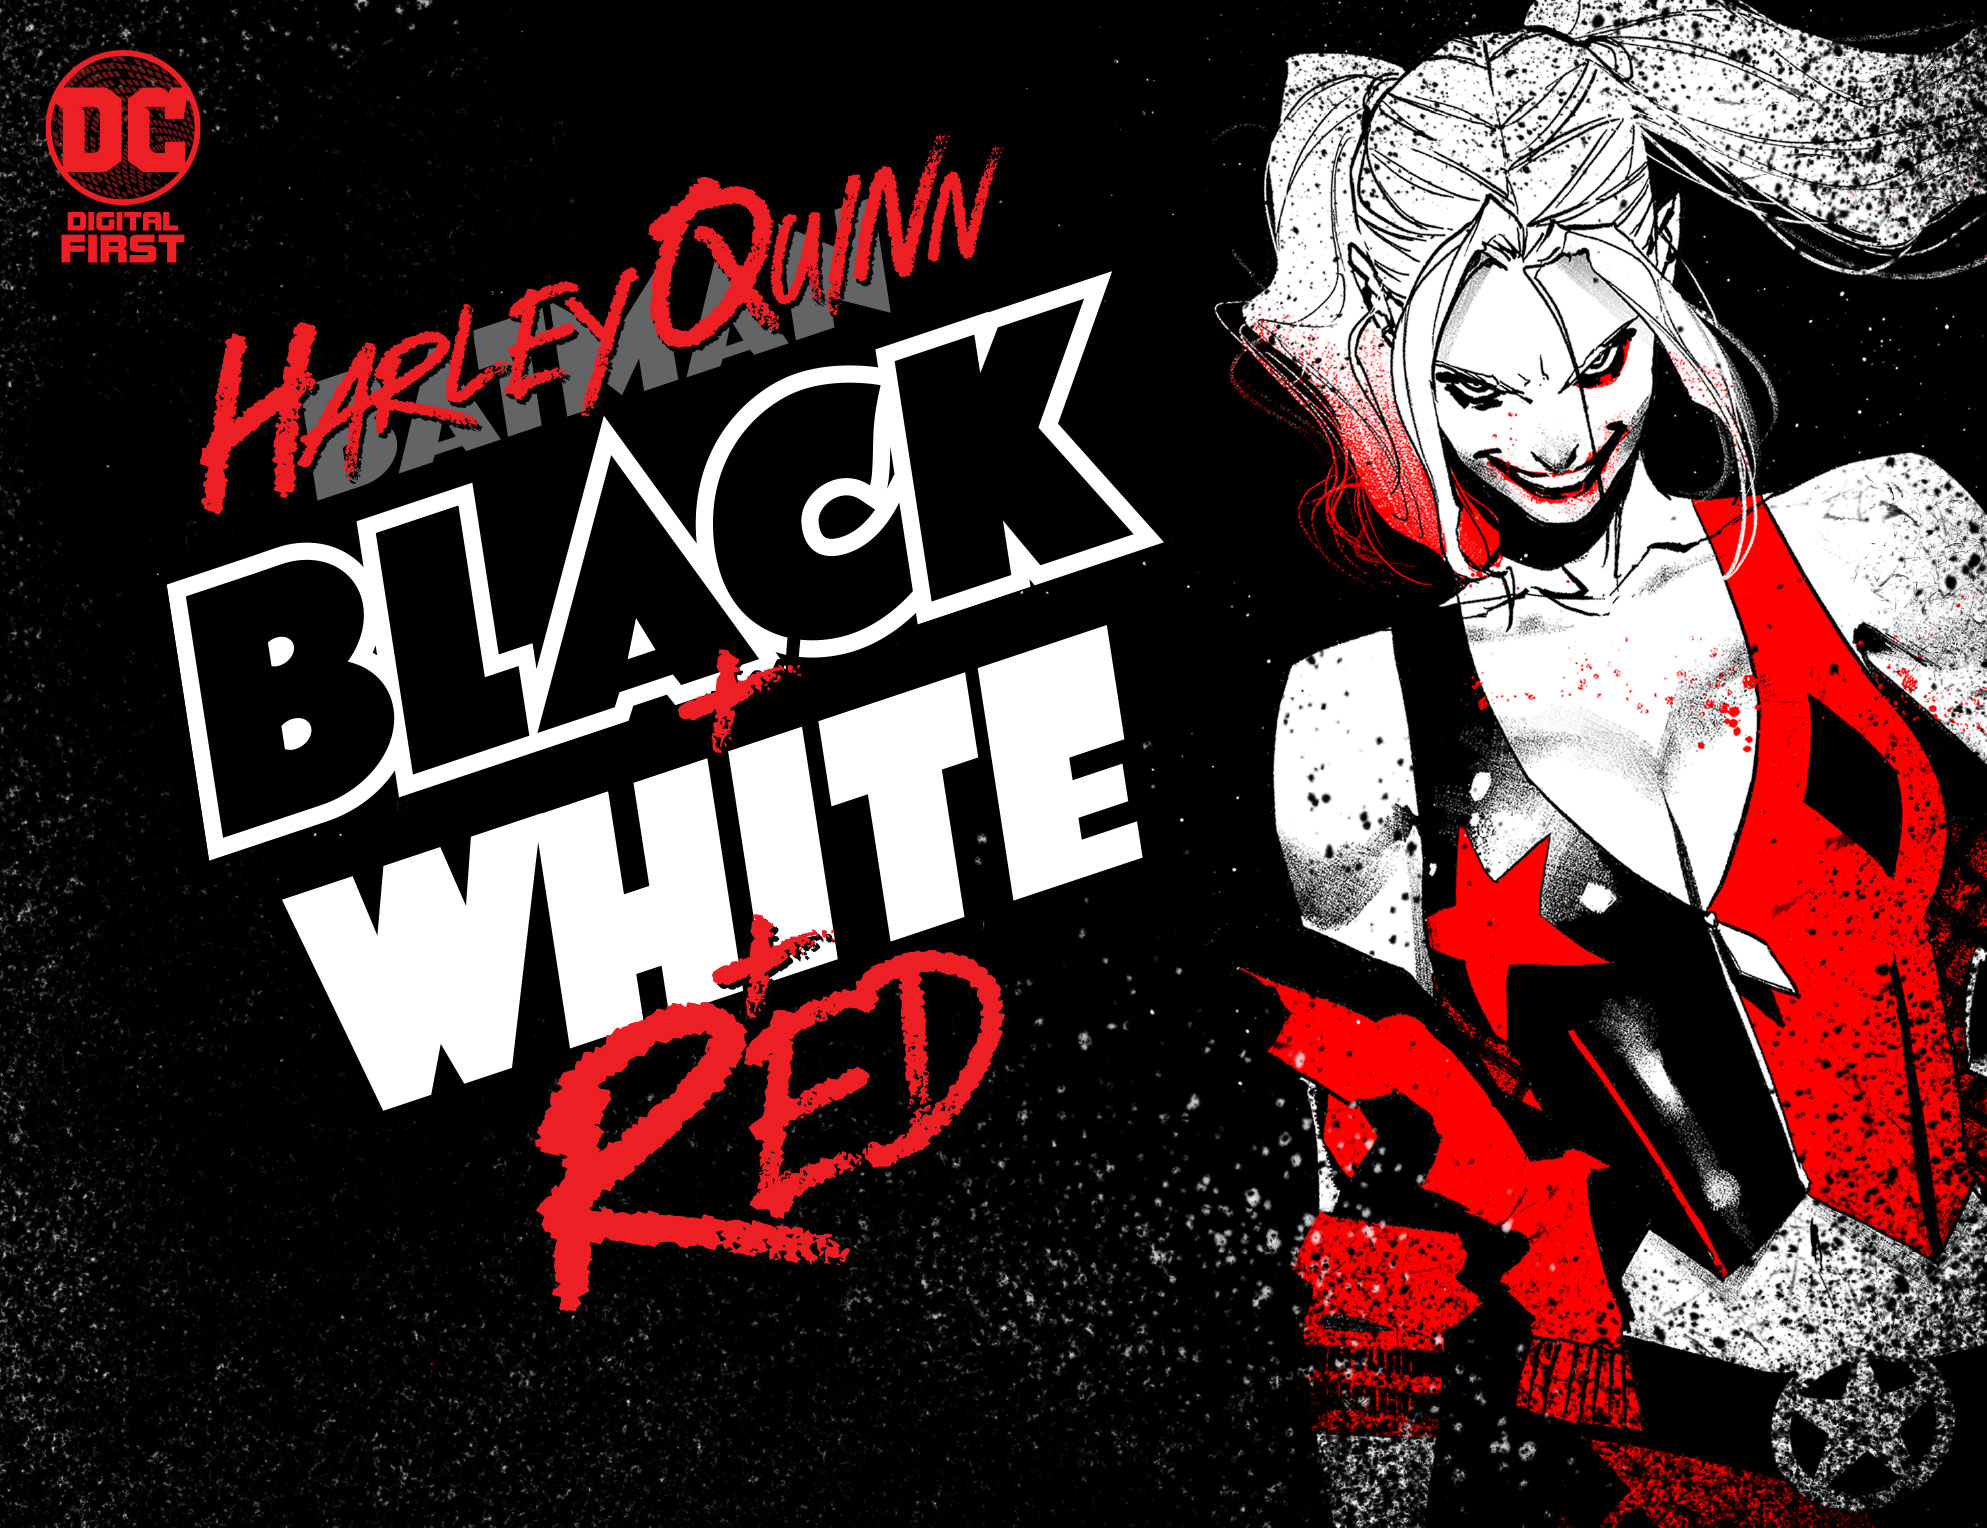 Harley Quinn: Black + White + Red will feature a fan-favorite lineup of talent across its 14 chapters.